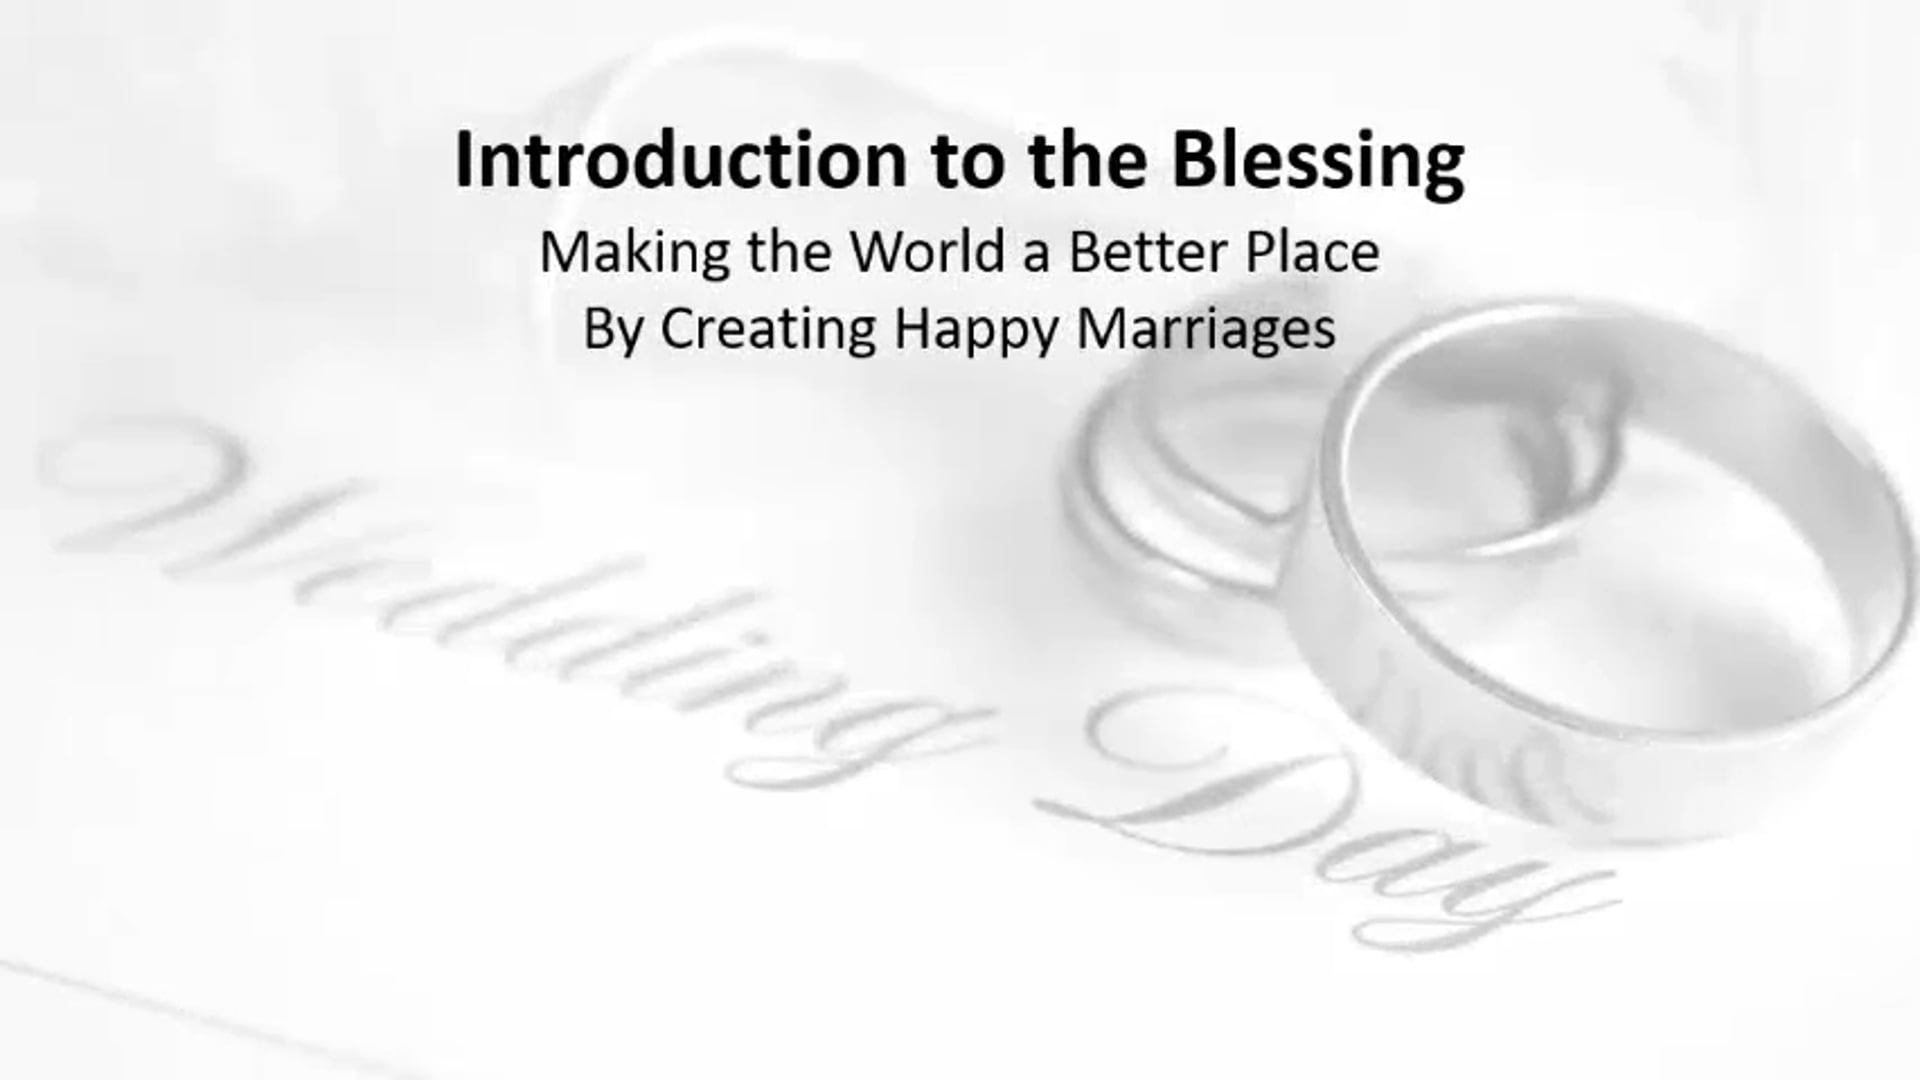 An Introduction to the Blessing